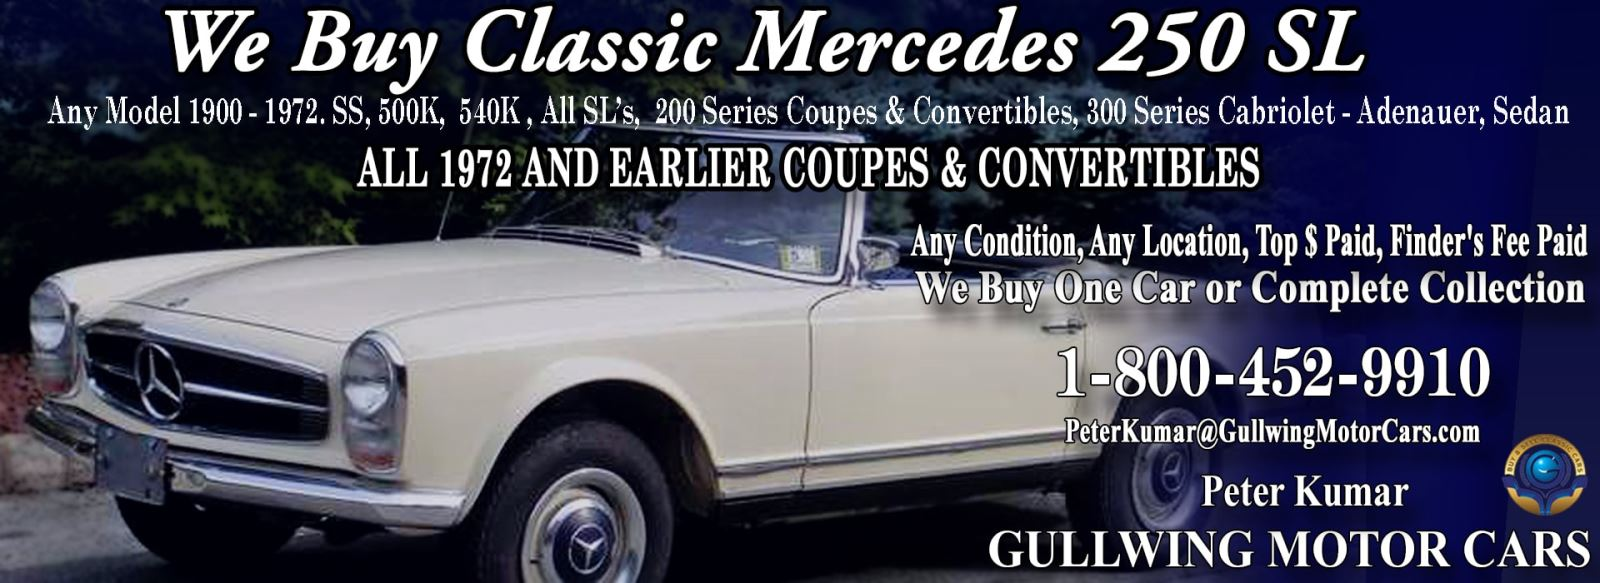 Classic Mercedes 250SL for sale, we buy vintage Mercedes 250SL. Call Peter Kumar. Gullwing Motor